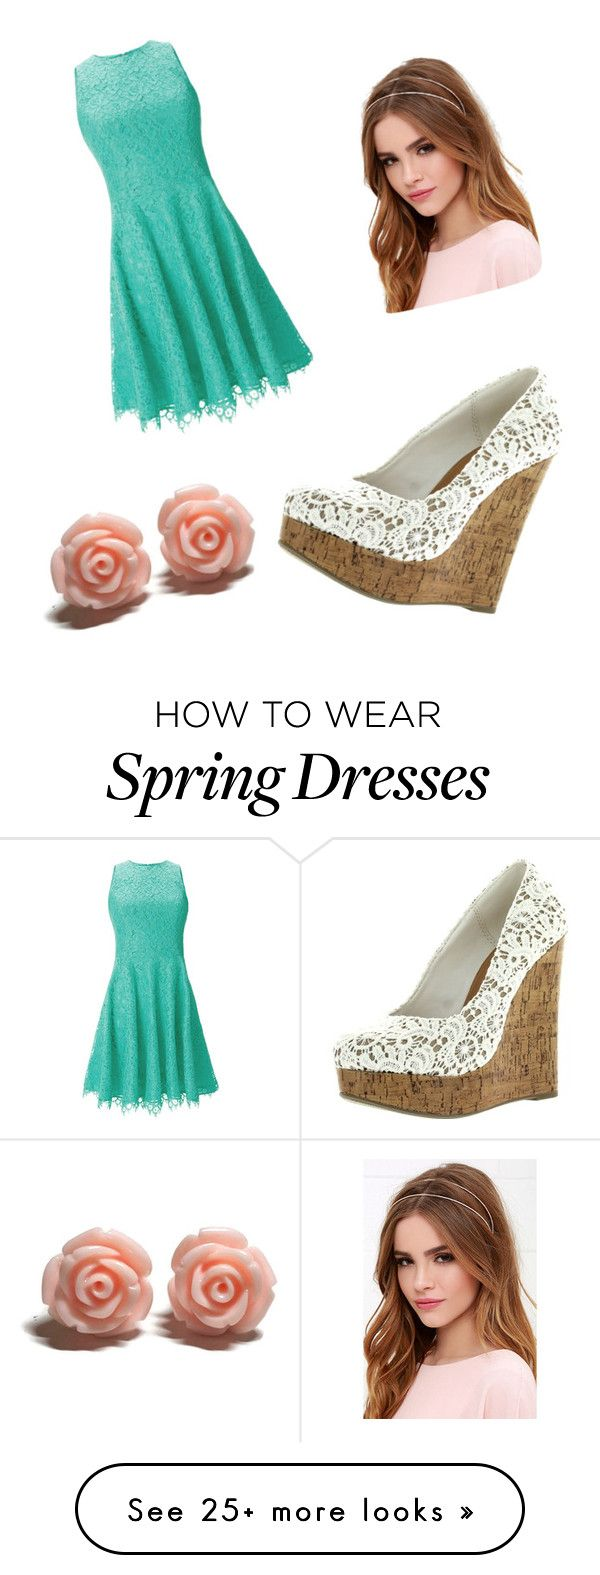 """""""spring"""" by sillykate on Polyvore featuring Shoshanna, Lulu*s, women's clothing, women's fashion, women, female, woman, misses and juniors"""